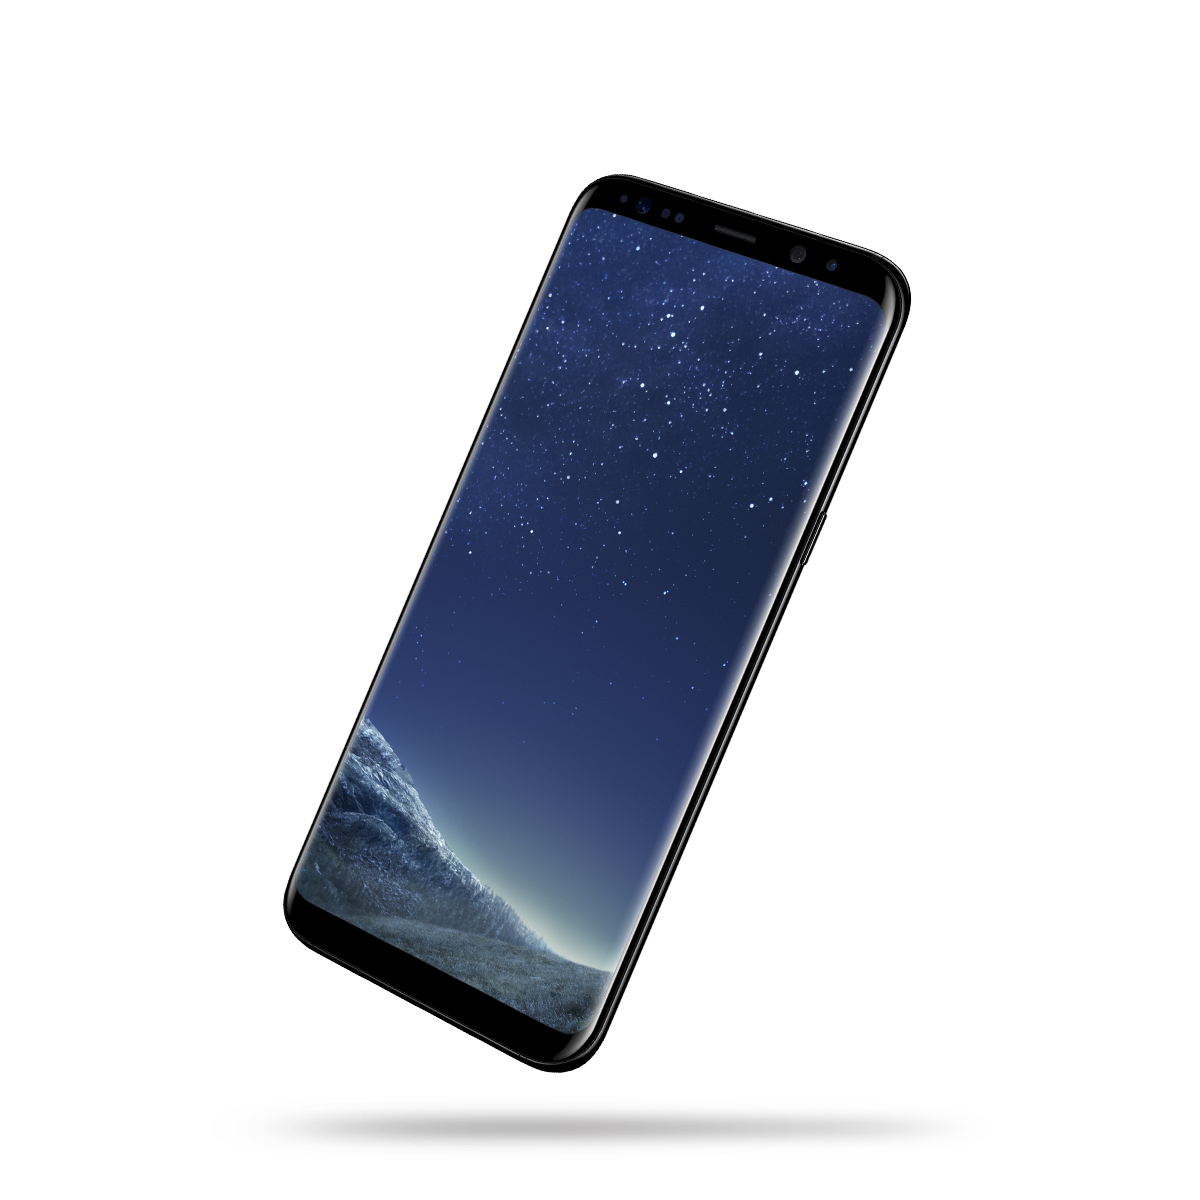 Galaxy s8 plus png. The samsung s mobile